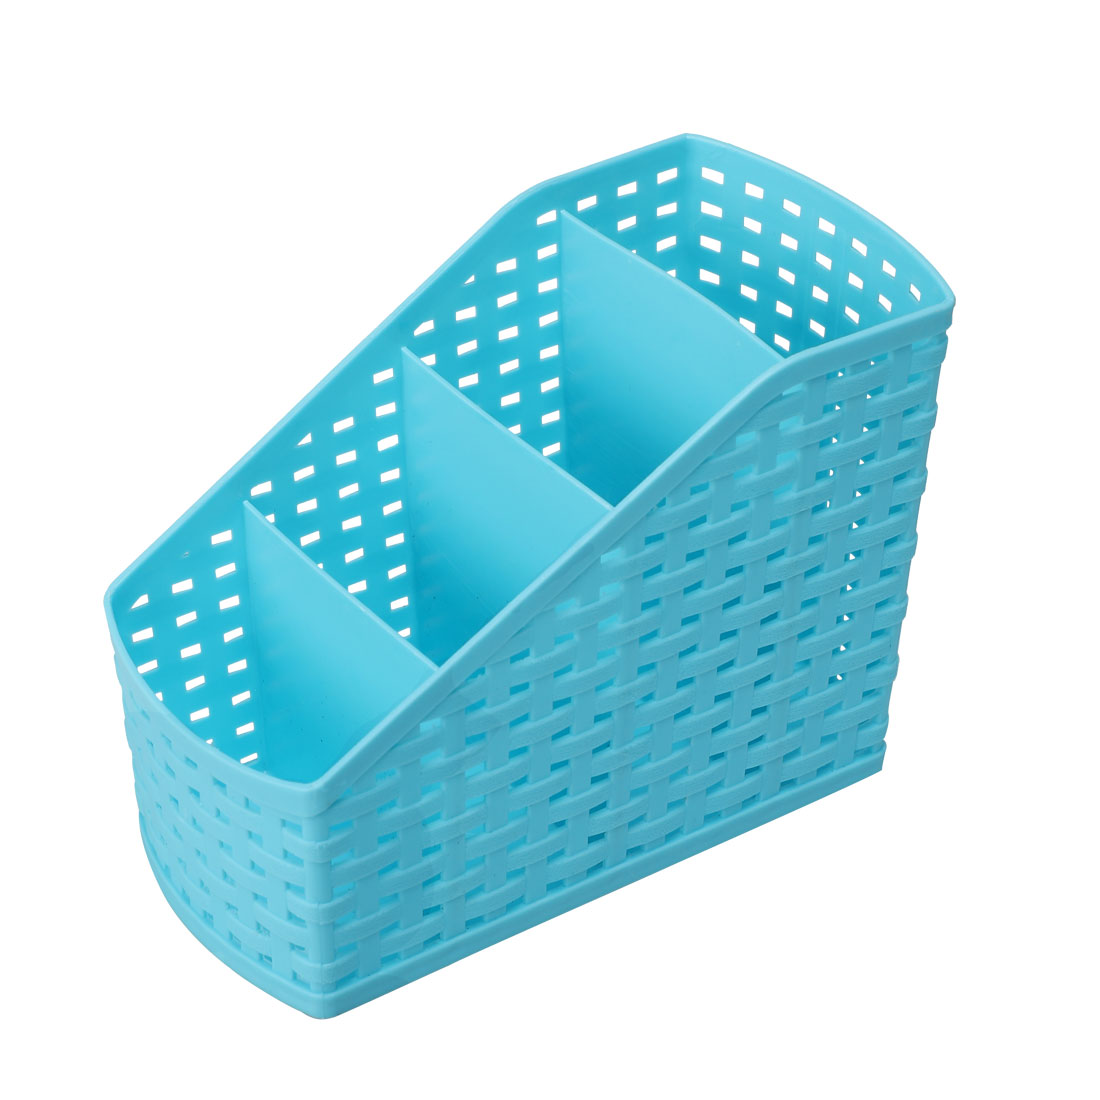 Home Office Plastic Desktop Table Sundries 4 Slots Storage Drawer Divider Box Blue